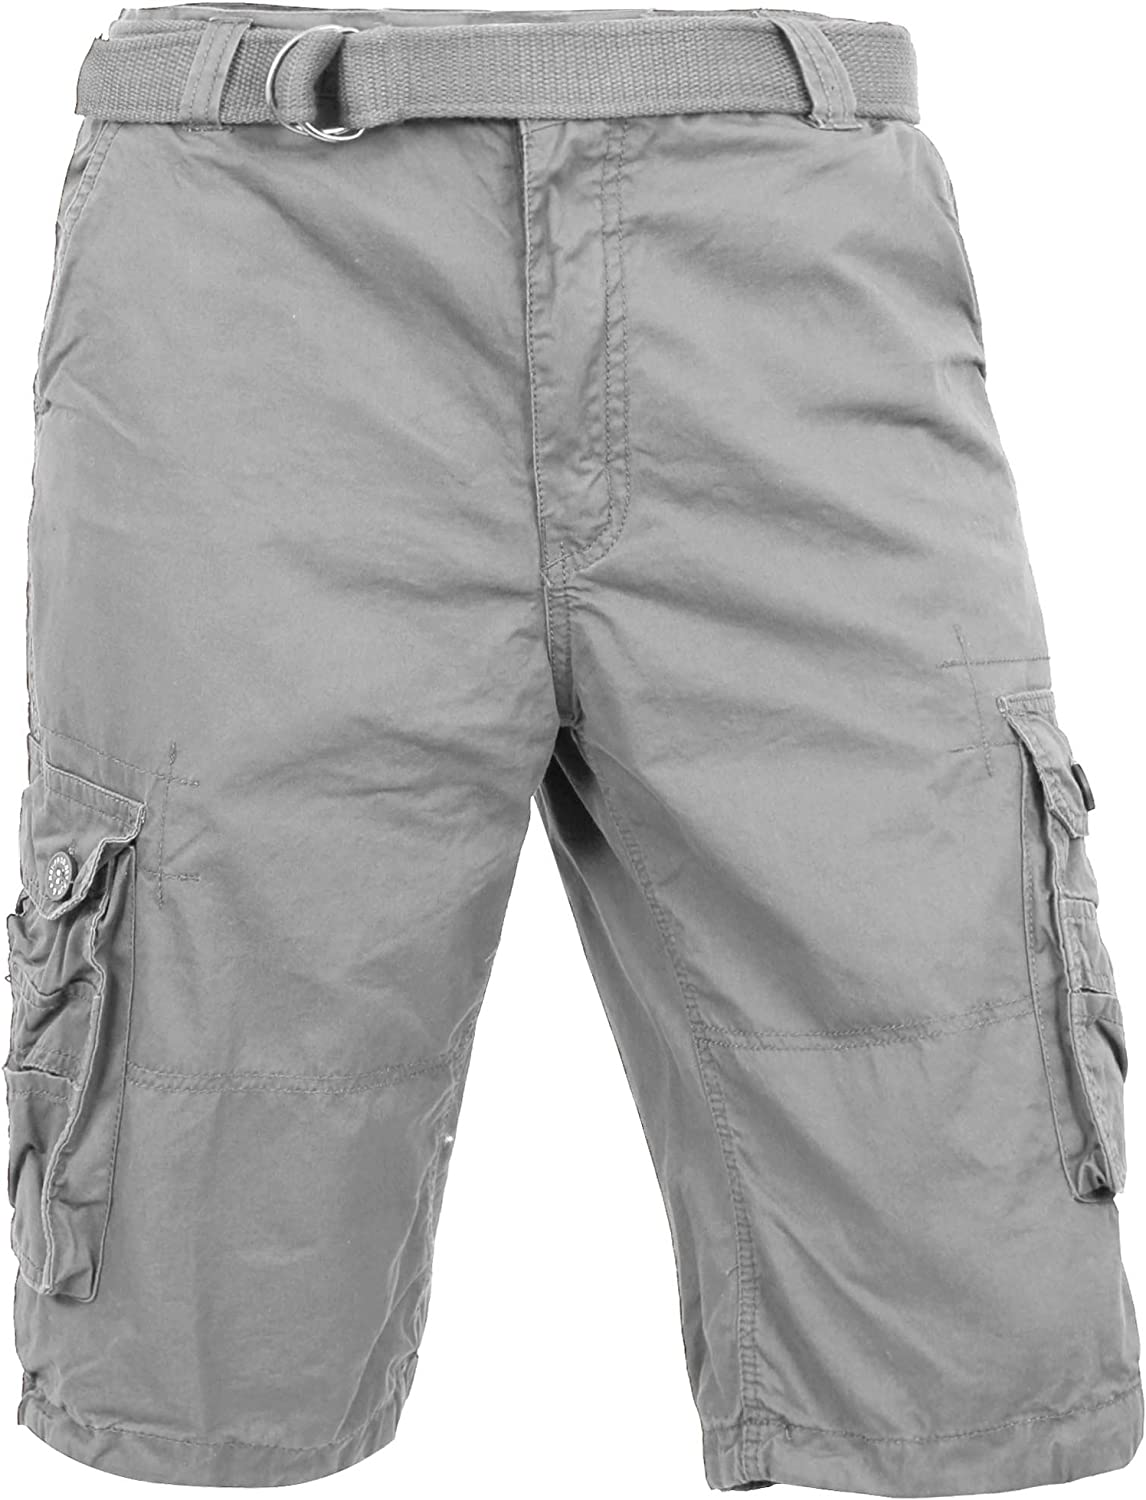 Hat and Beyond Mens Premium Cargo Shorts with Belt Outdoor Twill Cotton Loose Fit Multi Pocket Pants